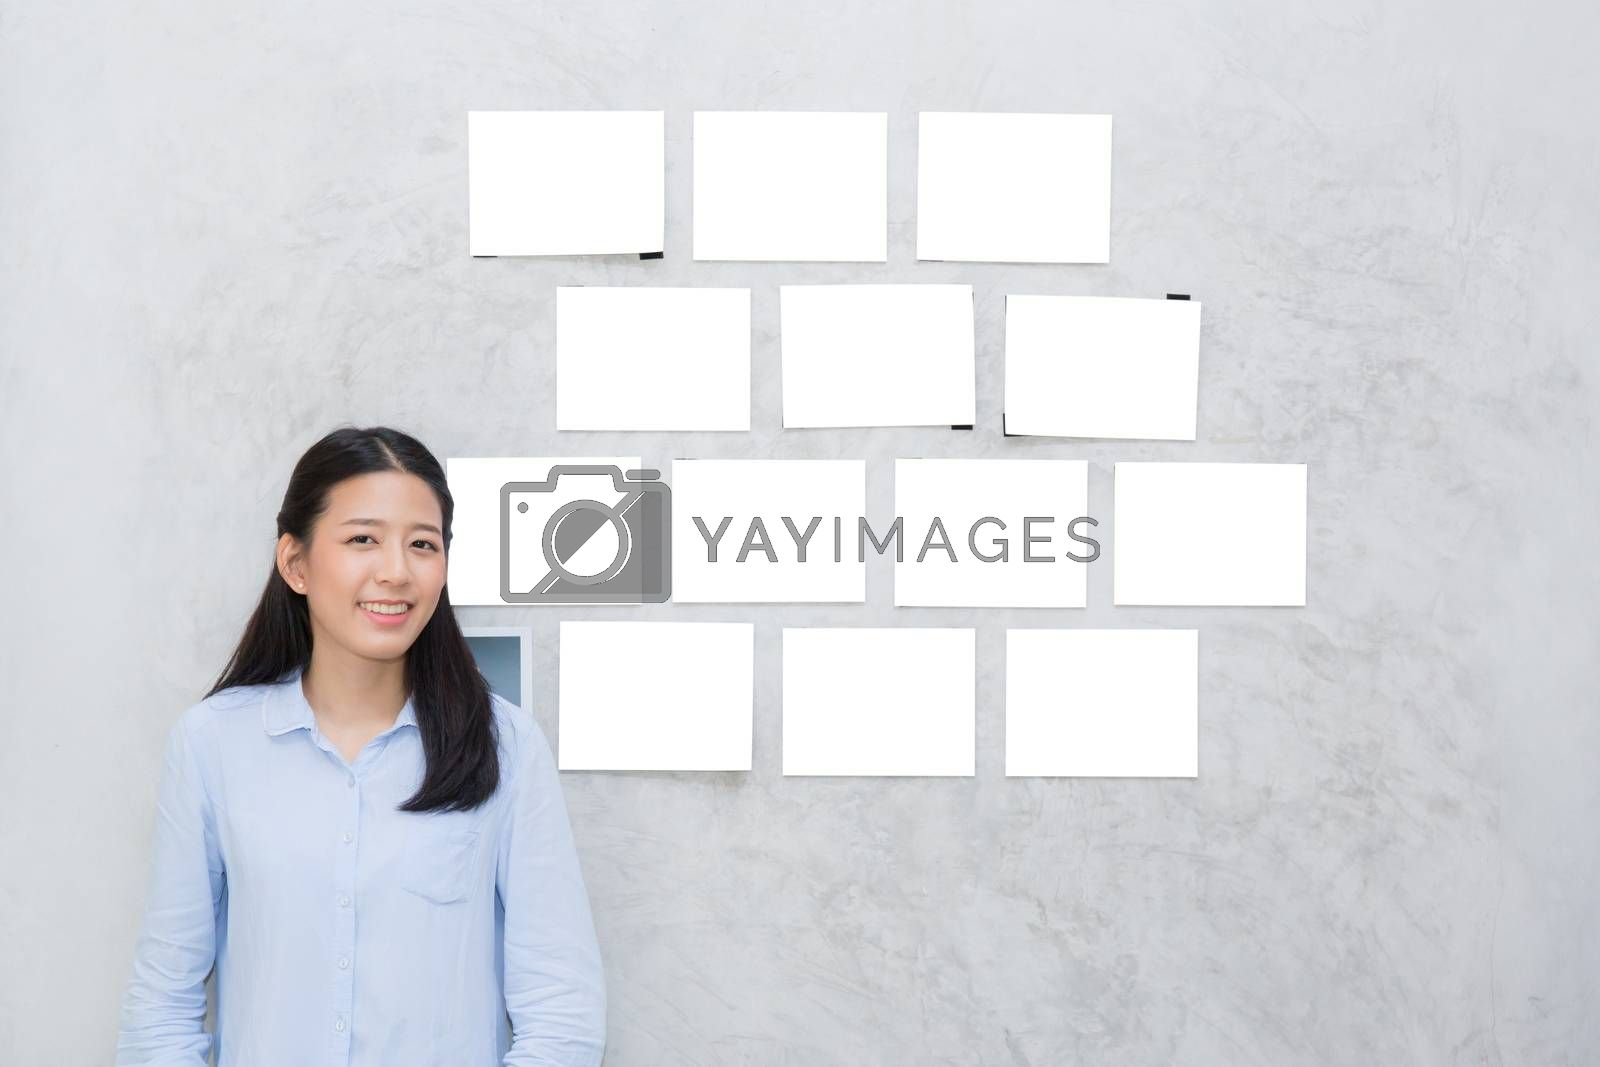 Beautiful of portrait asian young woman standing with picture gallery copy space on wall texture cement background.